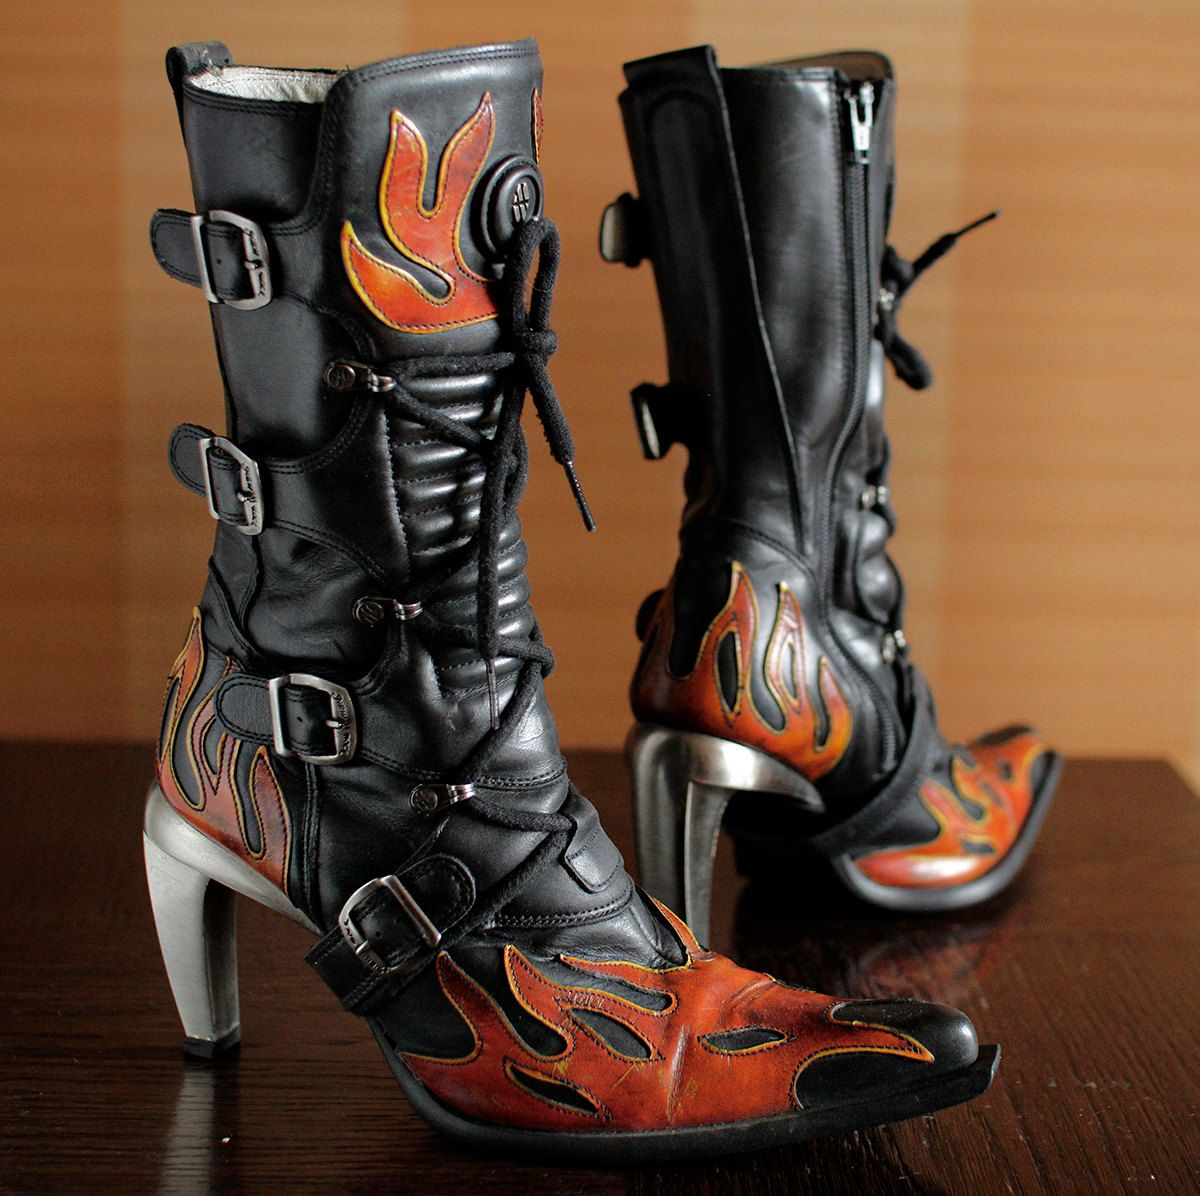 e6b7261e5d2bc cult model New Rock malicia FLAME boots made in Spain, size: 38 EU 7 ...